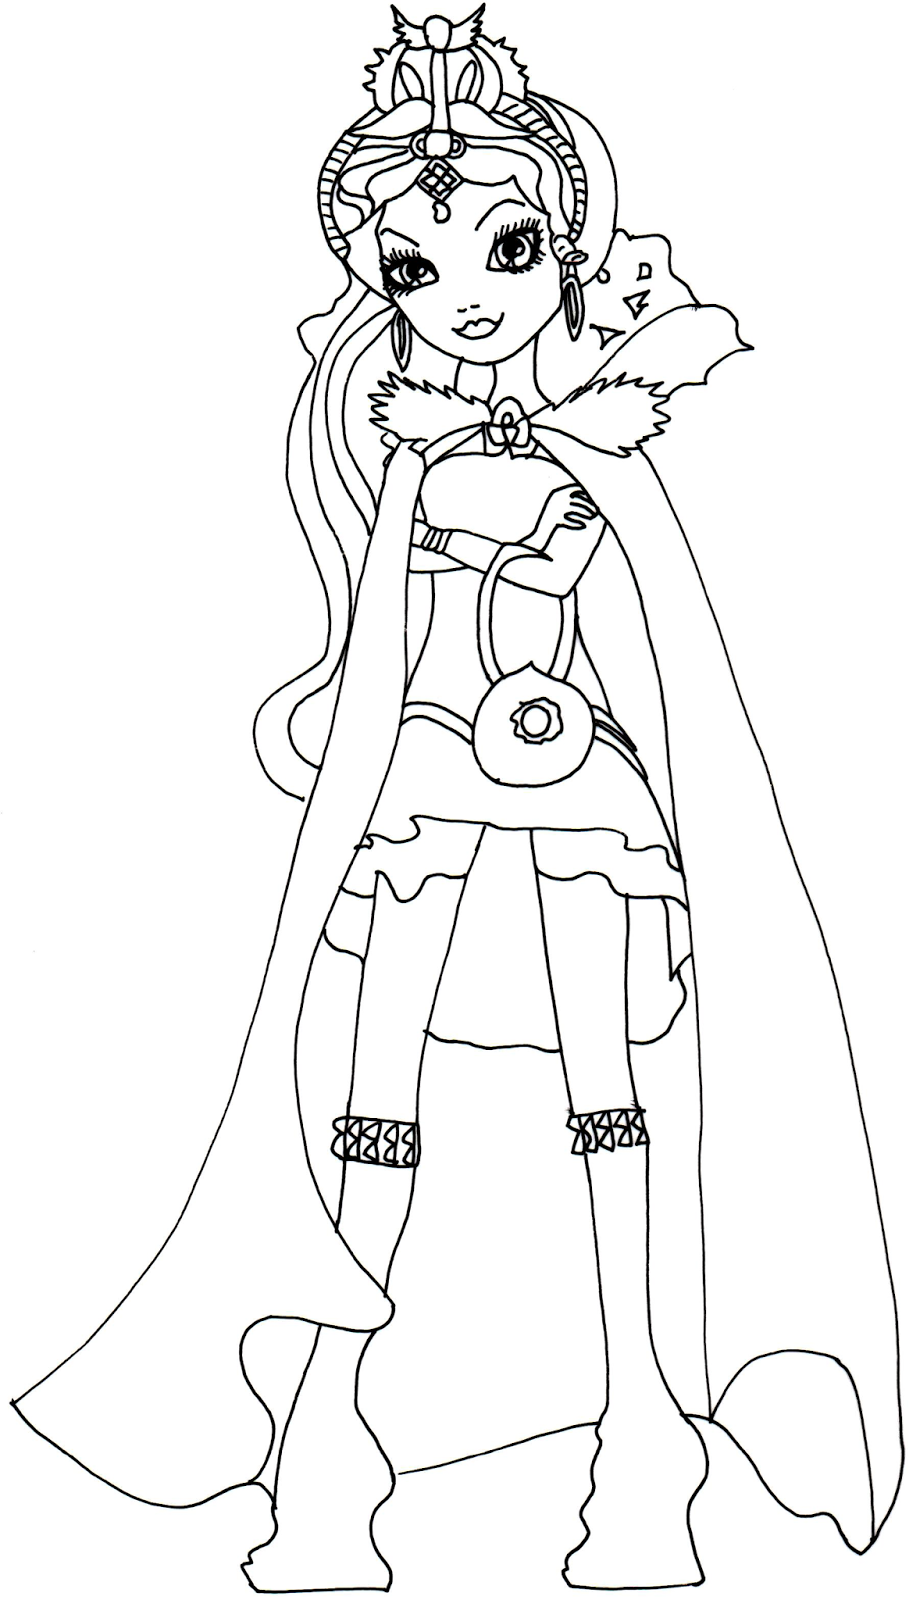 Free Printable Ever After High Coloring Pages: December 2013